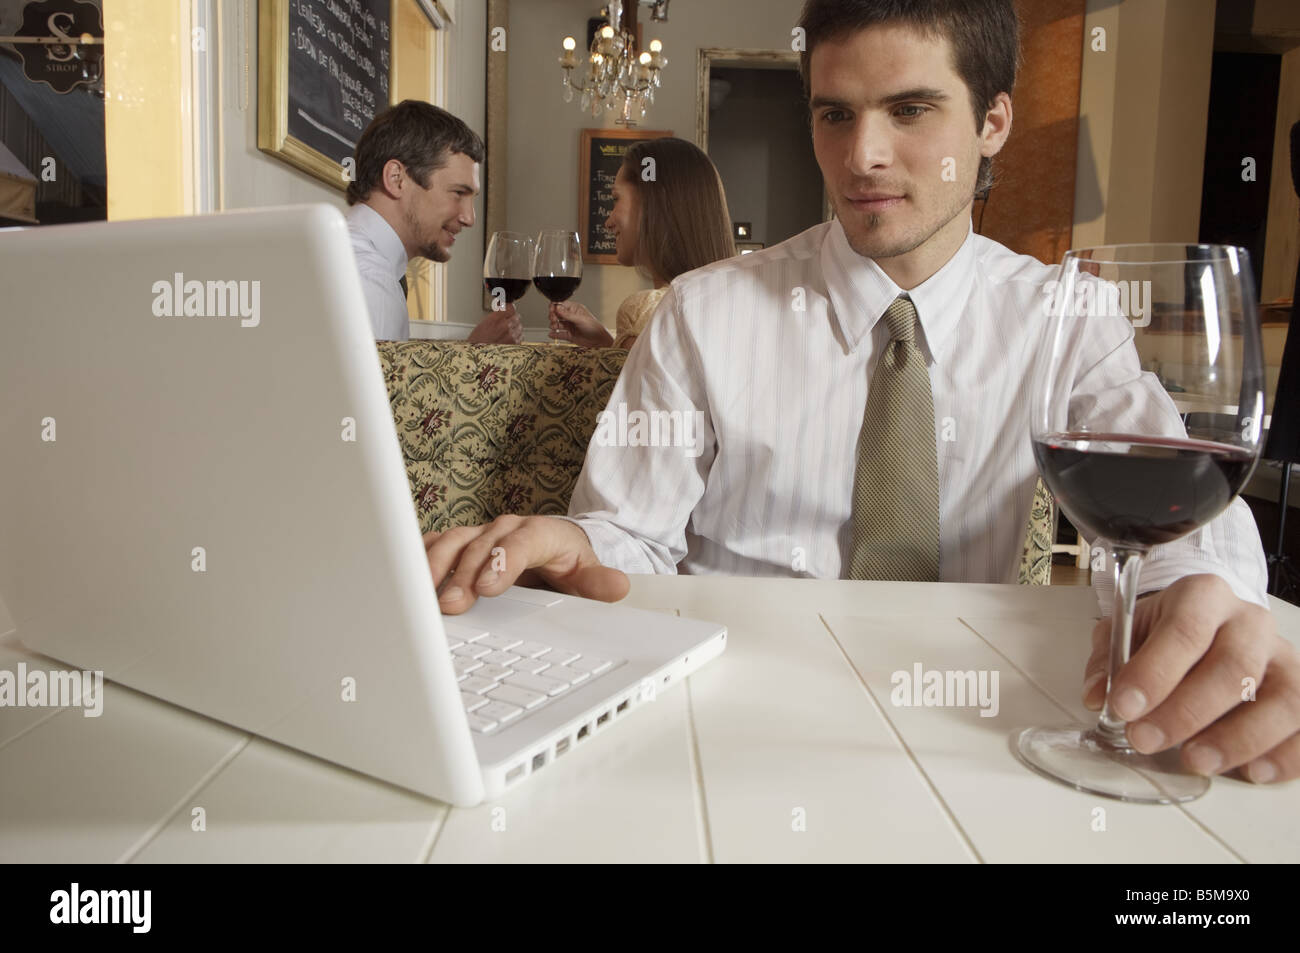 Man working with a laptop while holding a glass of wine. - Stock Image